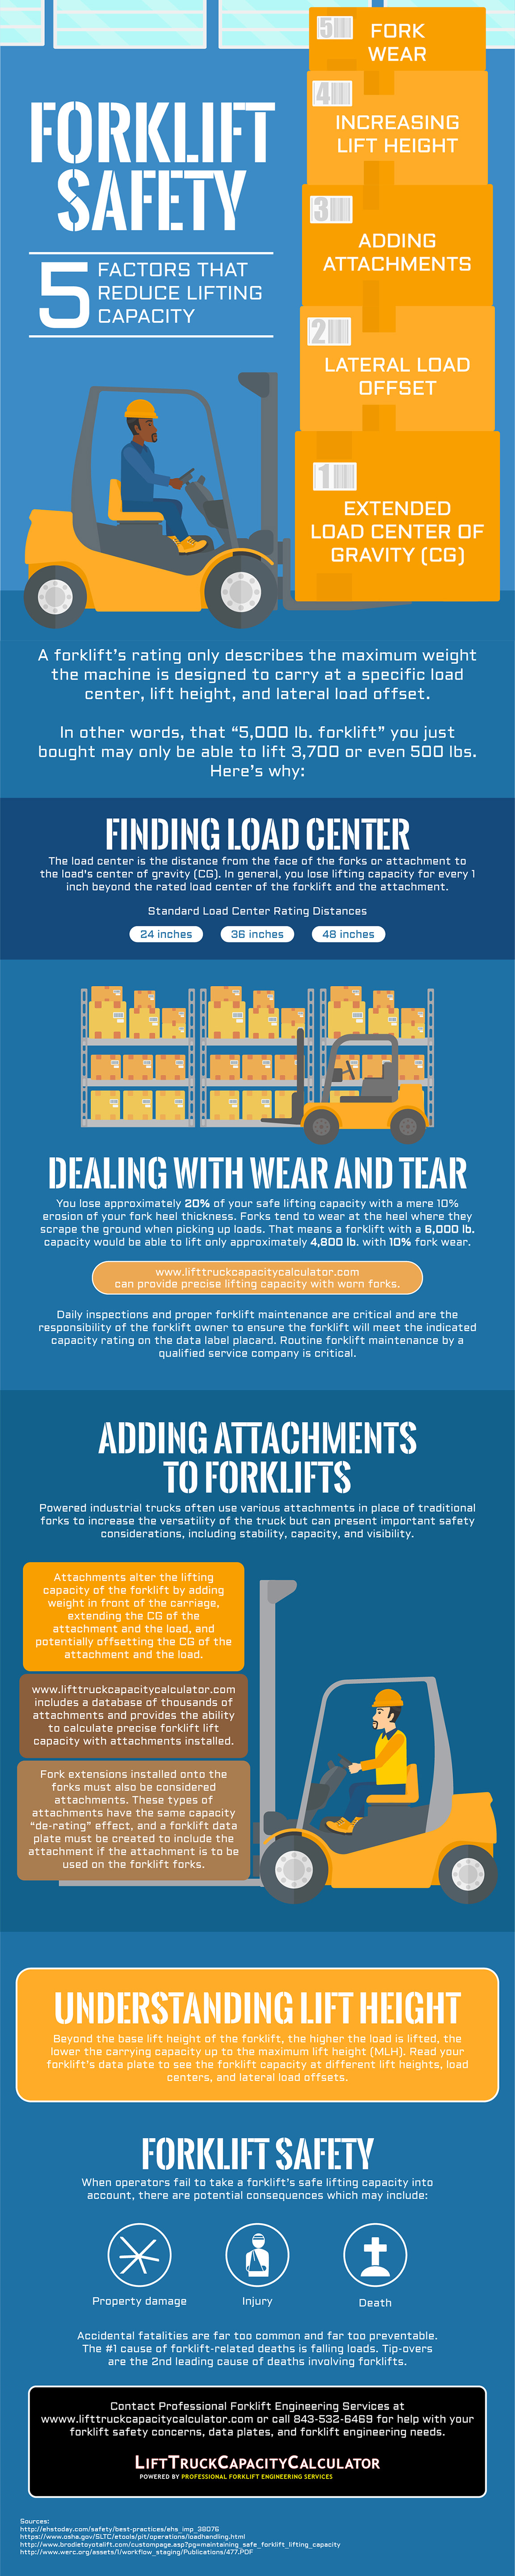 5 Factors That Reduce Lifting Capacity